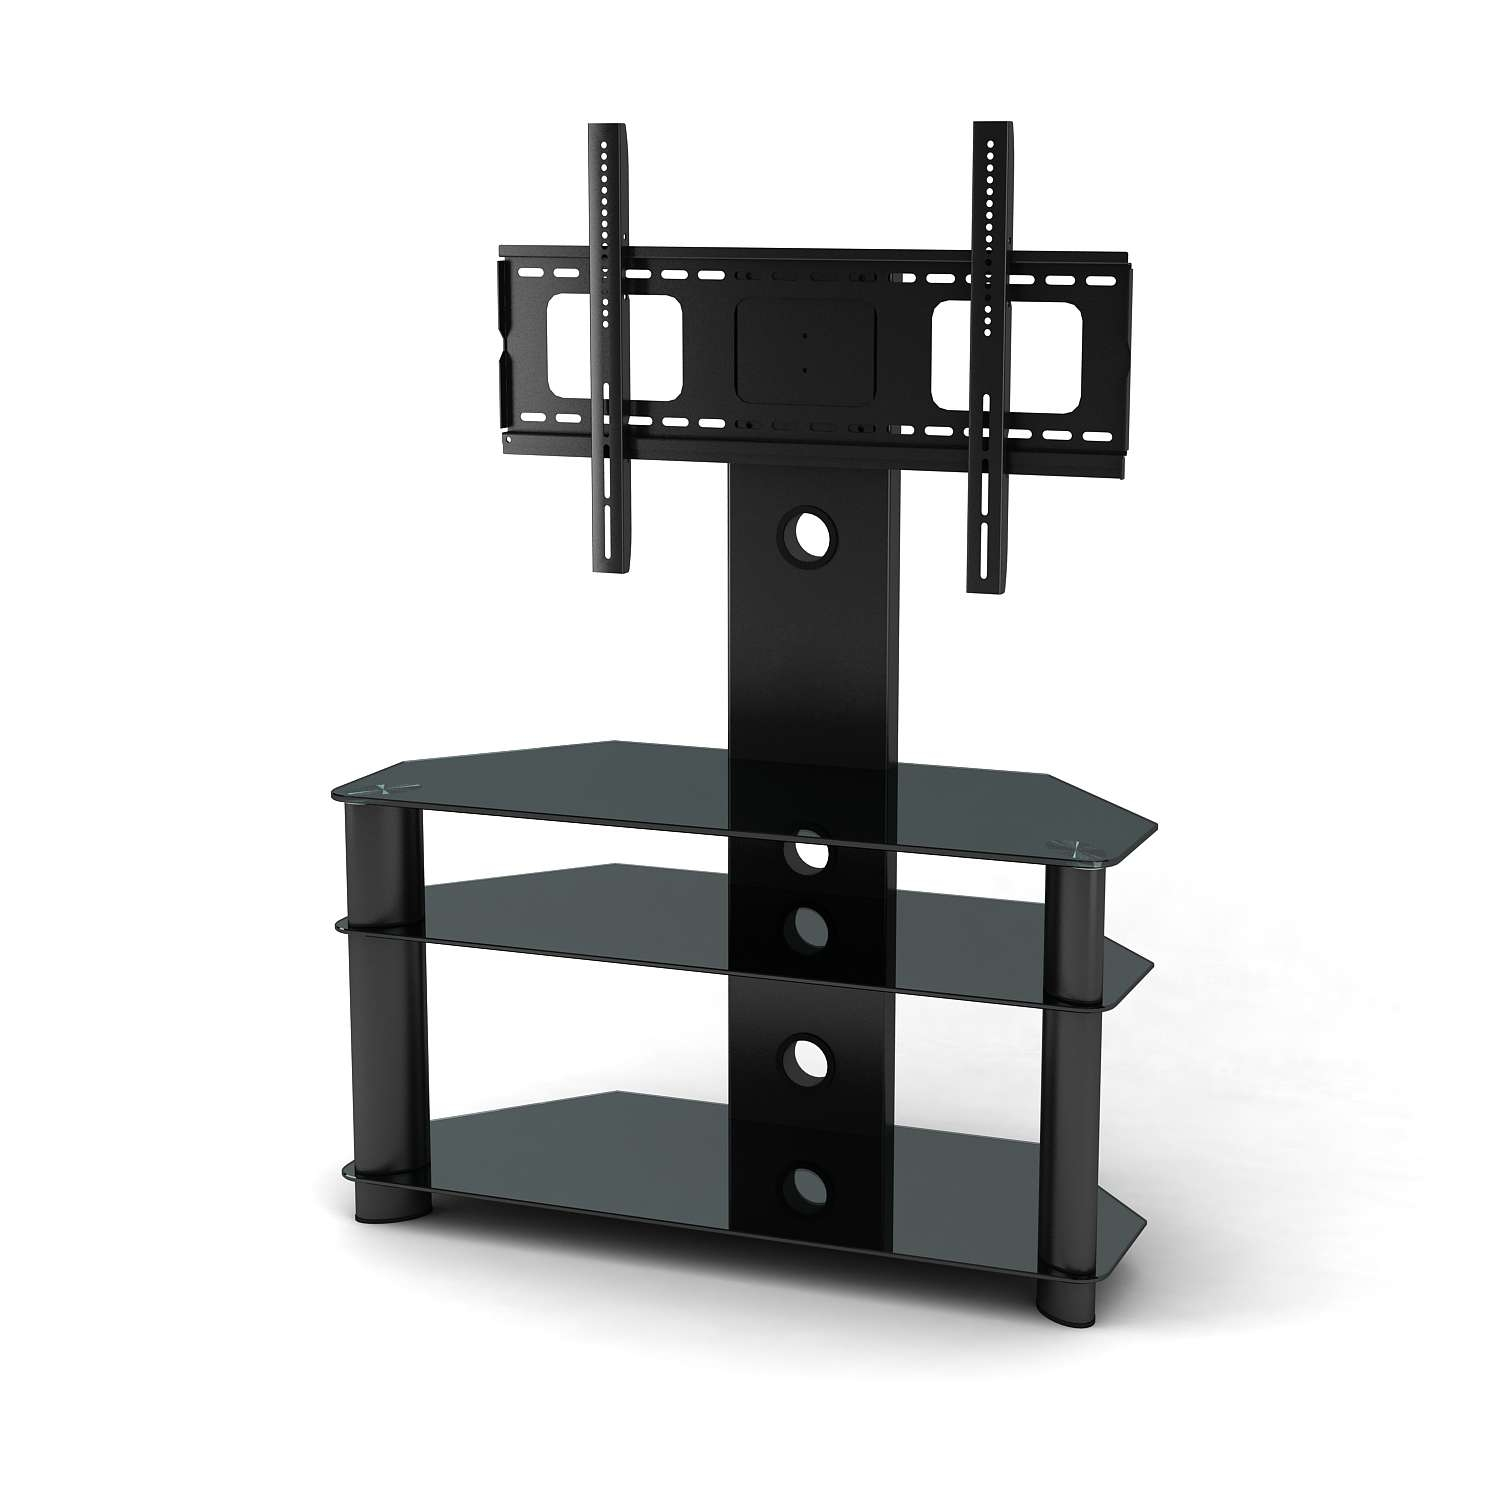 32 Inch Tv Stands For 24 Inch Led Tv Stands (View 11 of 15)